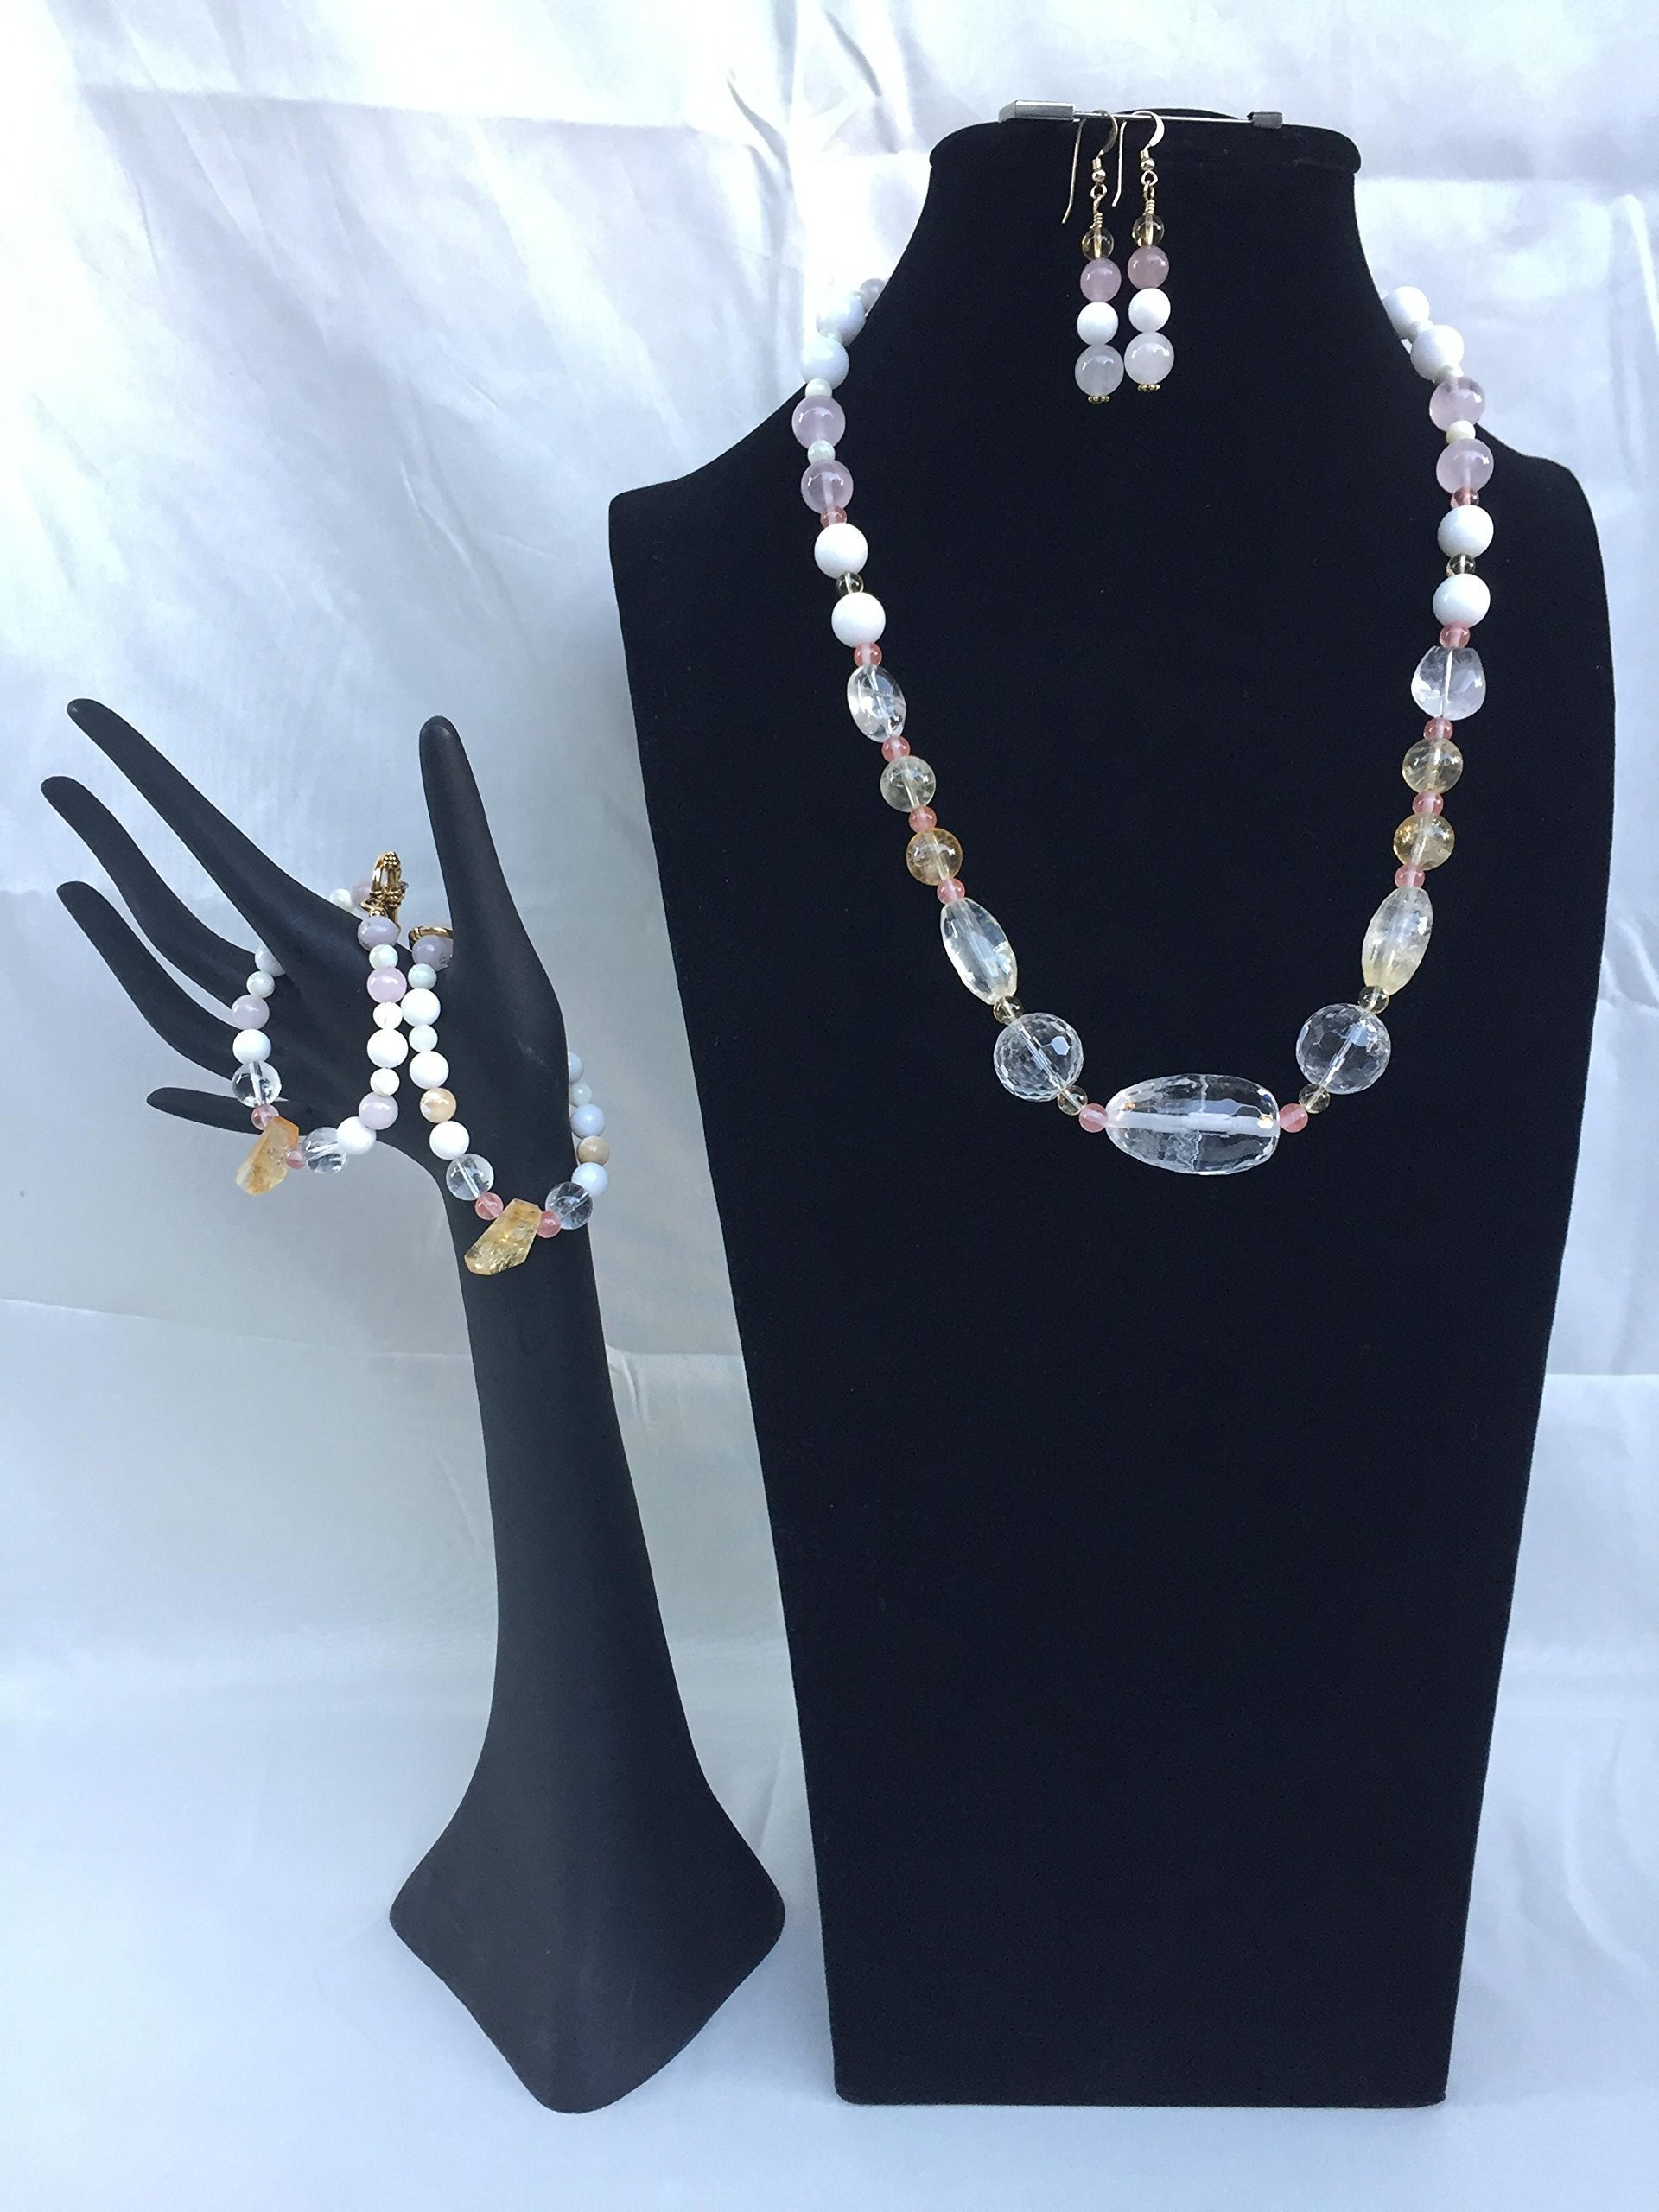 Crystal handmade gemstone jewelry set with a necklace, two bracelets and matching dangle earrings. Crystal and mixed gemstones. One of a kind